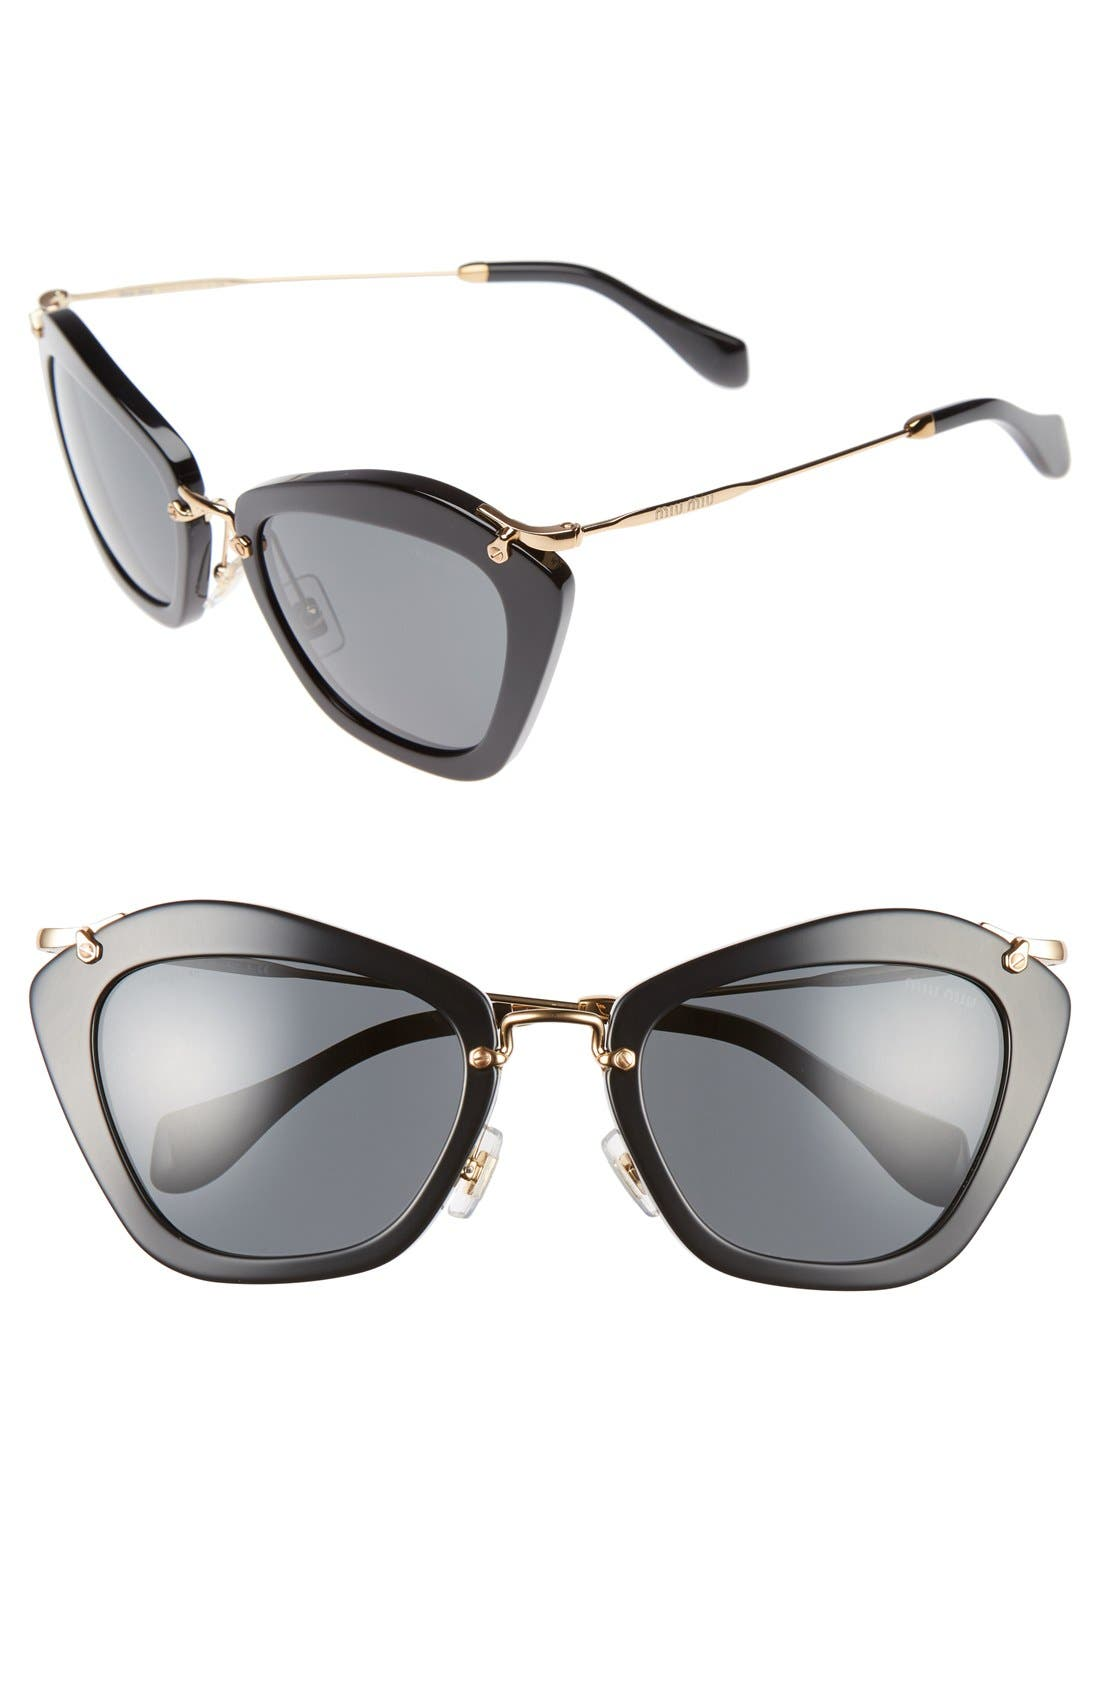 Main Image - Miu Miu Noir 55mm Cat Eye Sunglasses